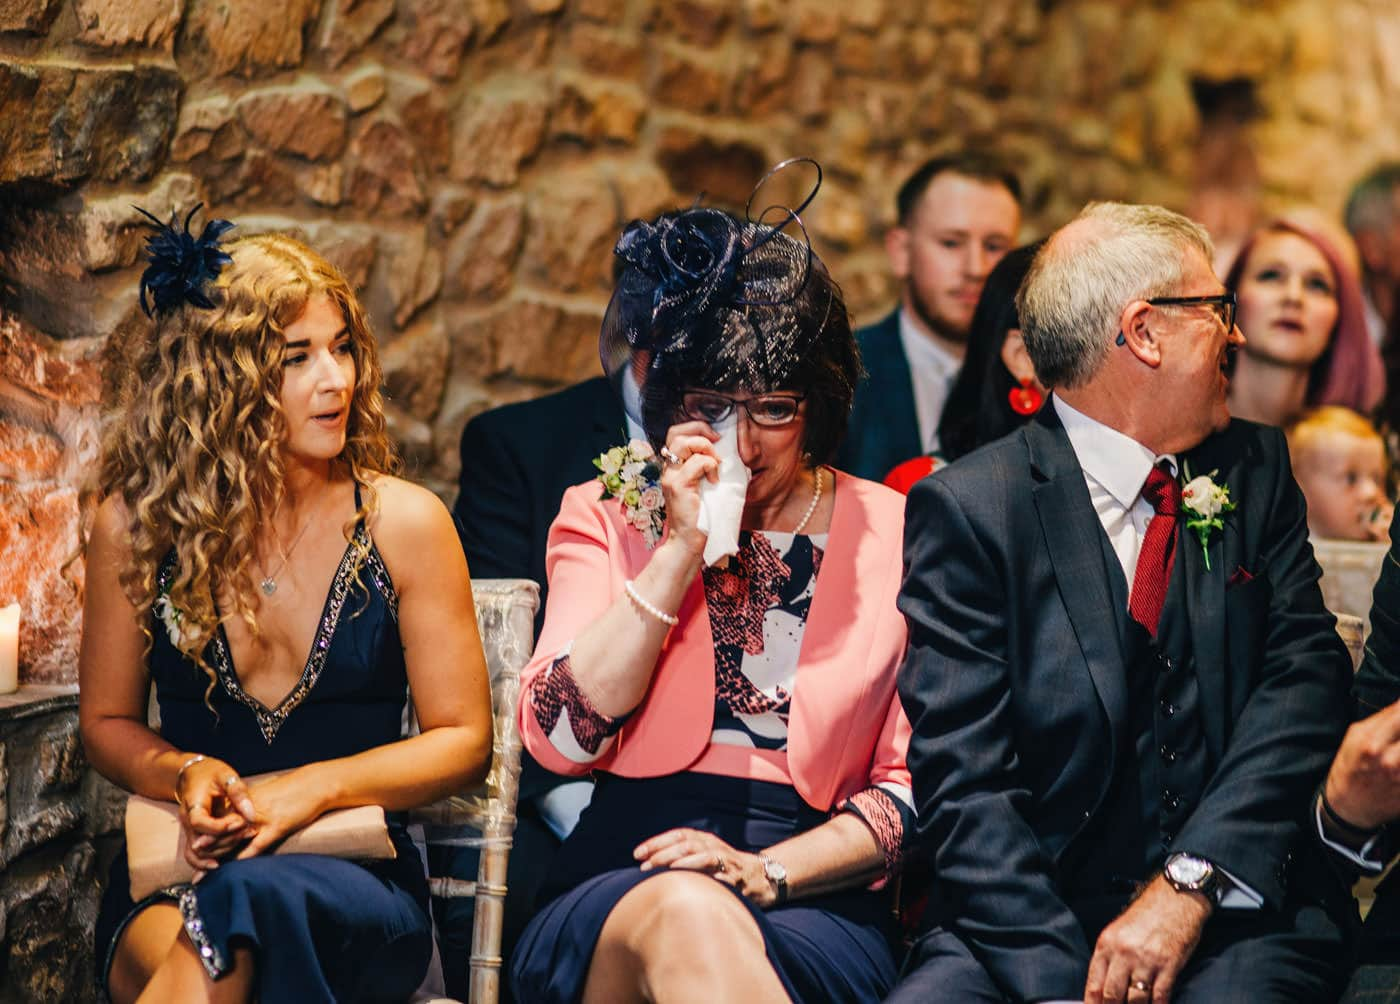 emotional mother at wedding